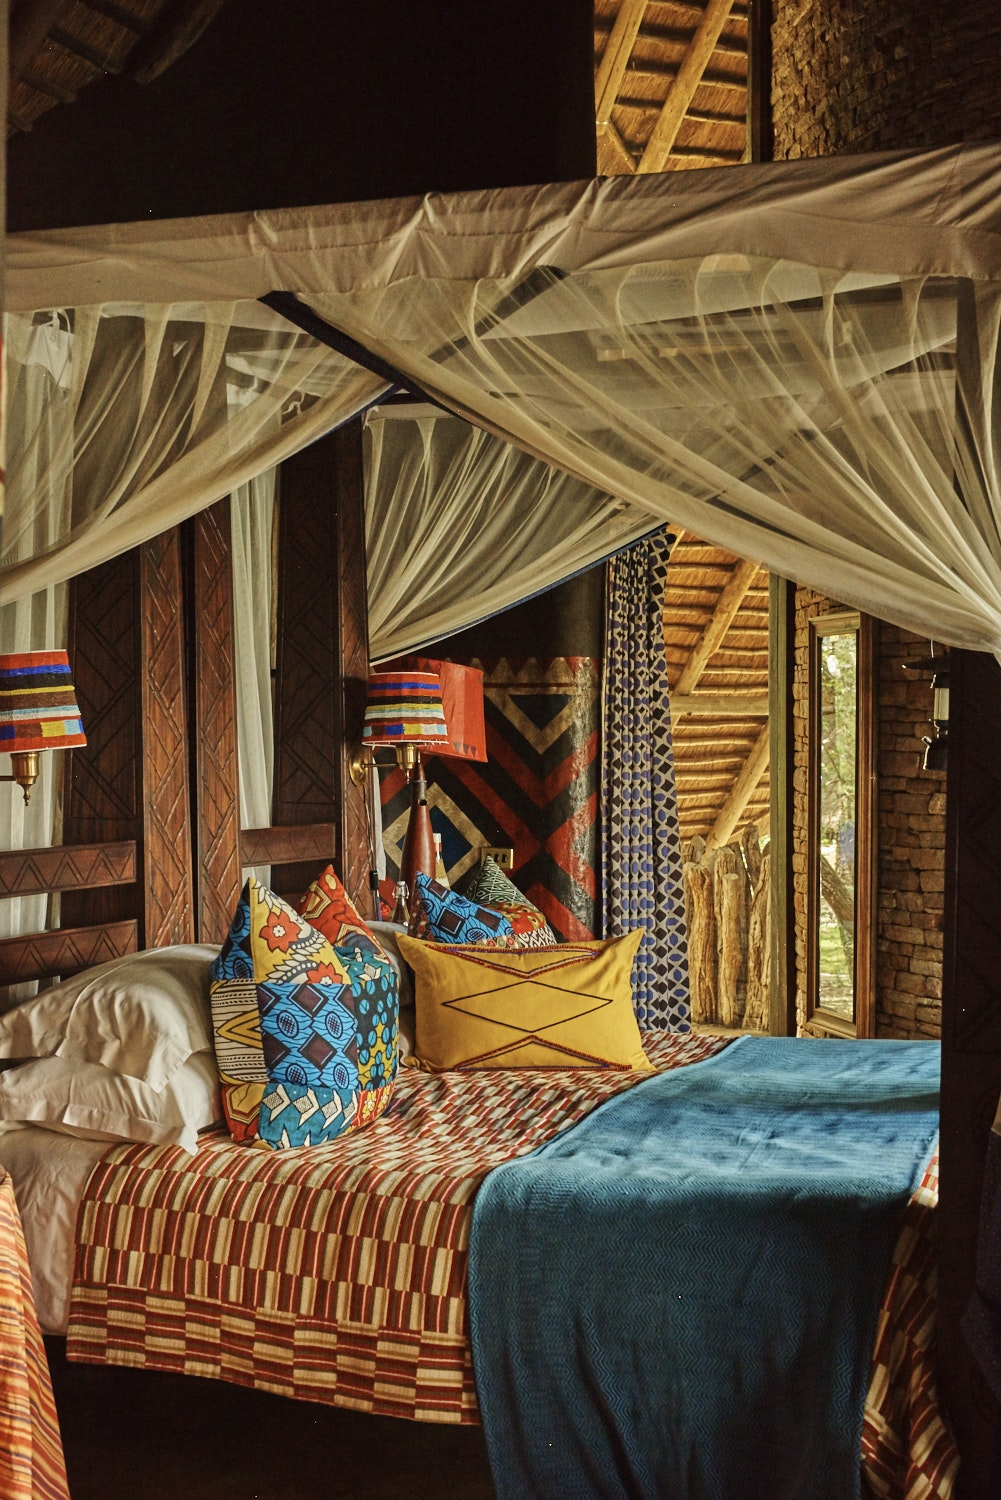 The art of the Shangaan people inspires the decor of the Singita Pamushana Lodge.